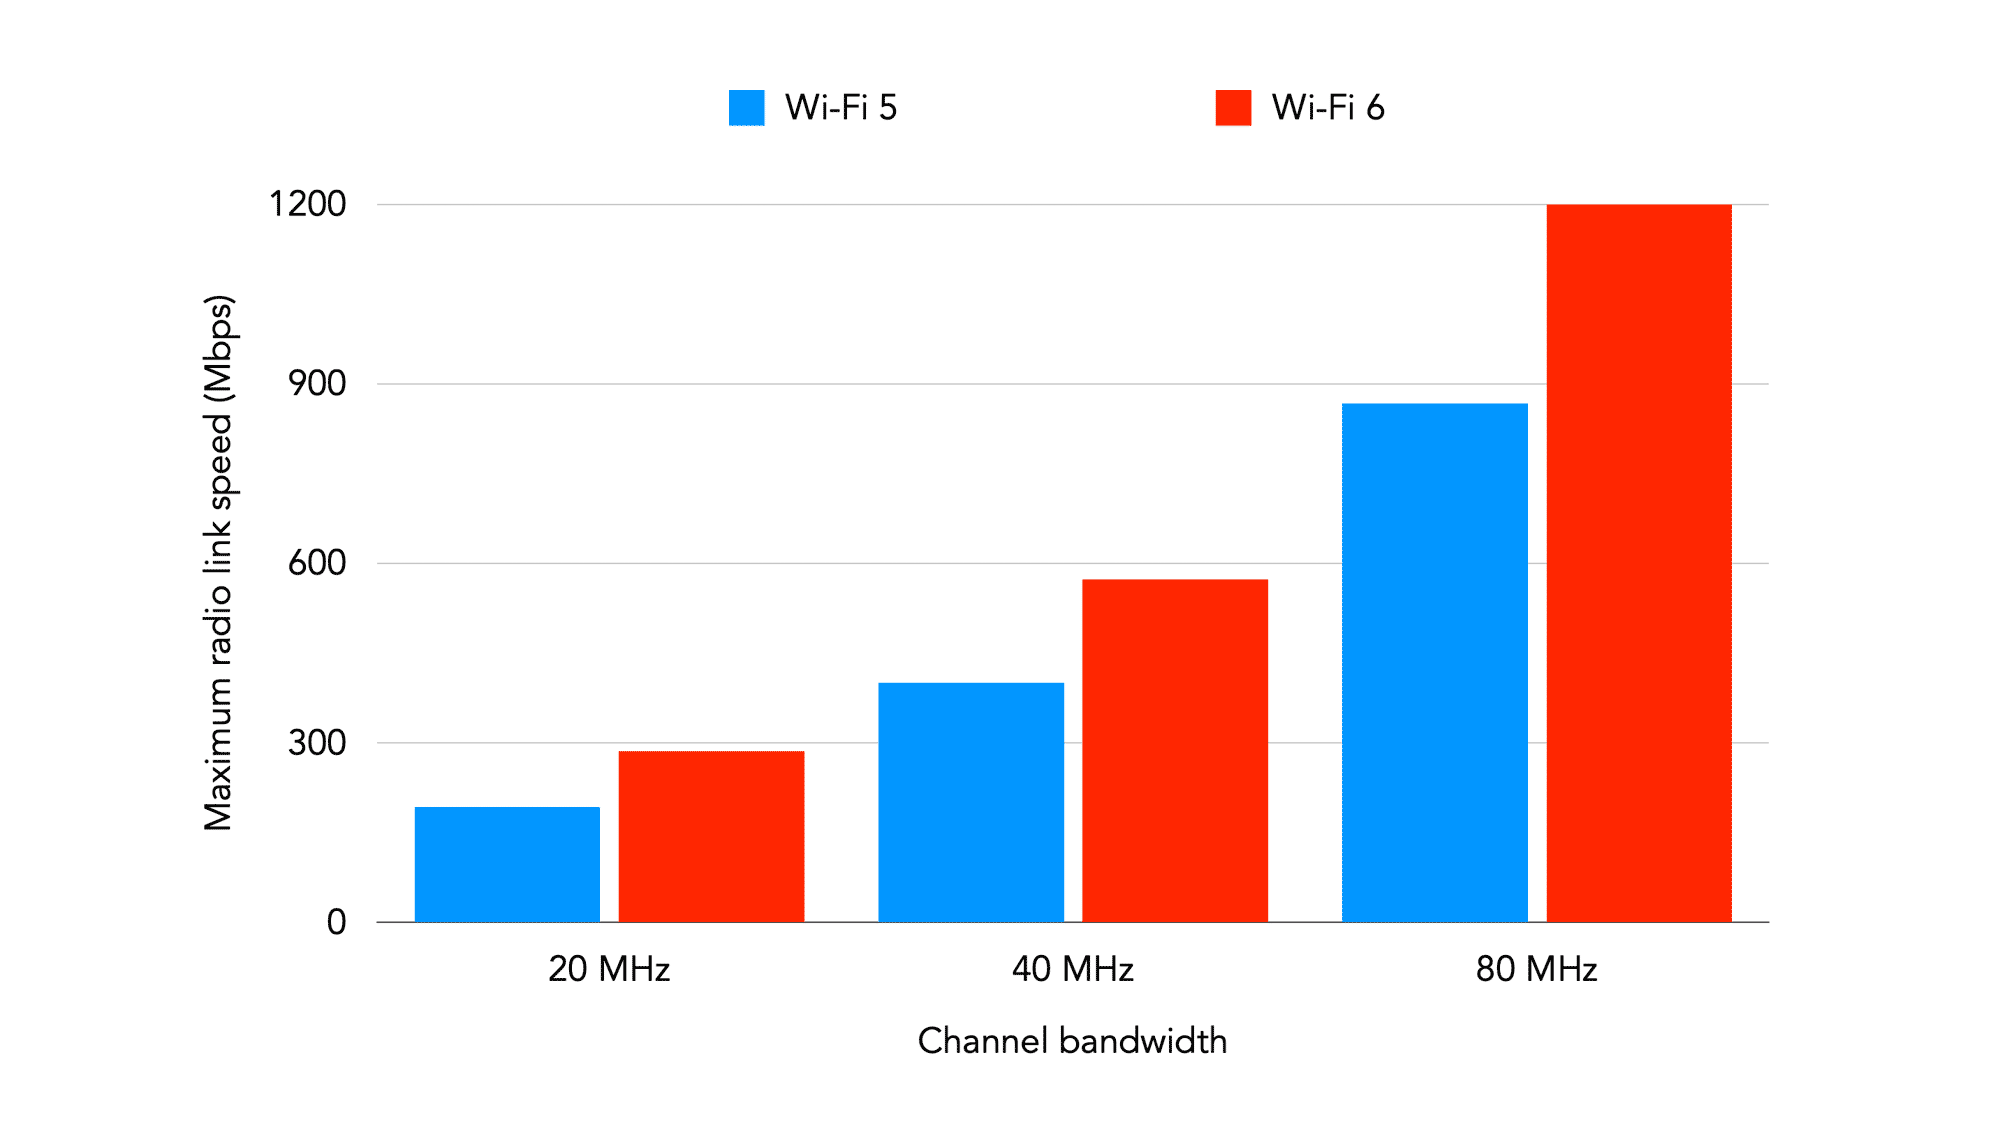 Speeds against channel bandwidth for Wi-Fi 5 and Wi-Fi 6